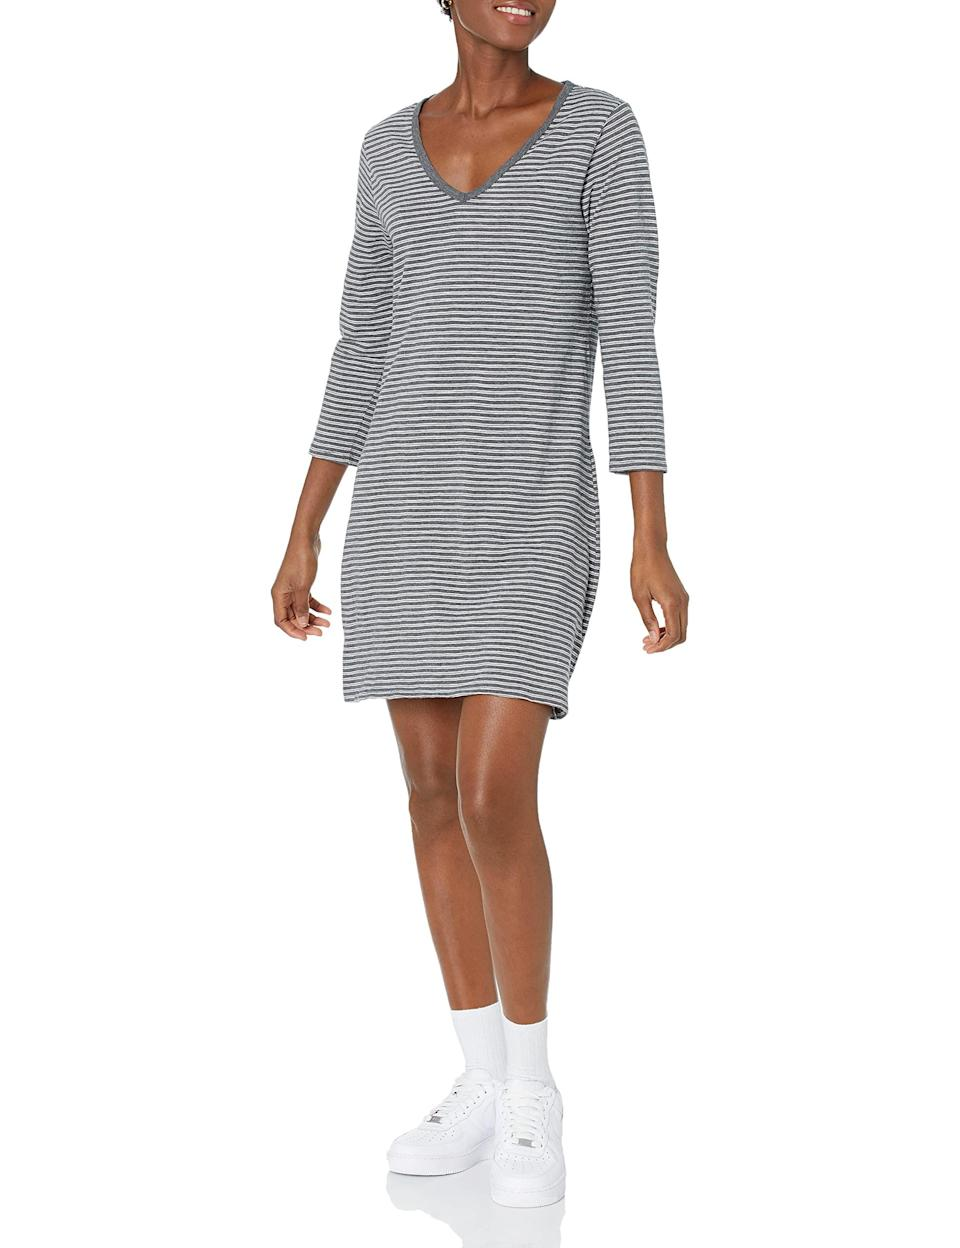 """<h2>T-Shirt Dresses</h2><br>Comfort is key with a t-shirt dress made for unrestricted movement and endless versatility. <br><br><strong>Daily Ritual</strong> Cotton 3/4-Sleeve V-Neck Dress, $, available at <a href=""""https://amzn.to/3Amb7cy"""" rel=""""nofollow noopener"""" target=""""_blank"""" data-ylk=""""slk:Amazon"""" class=""""link rapid-noclick-resp"""">Amazon</a>"""